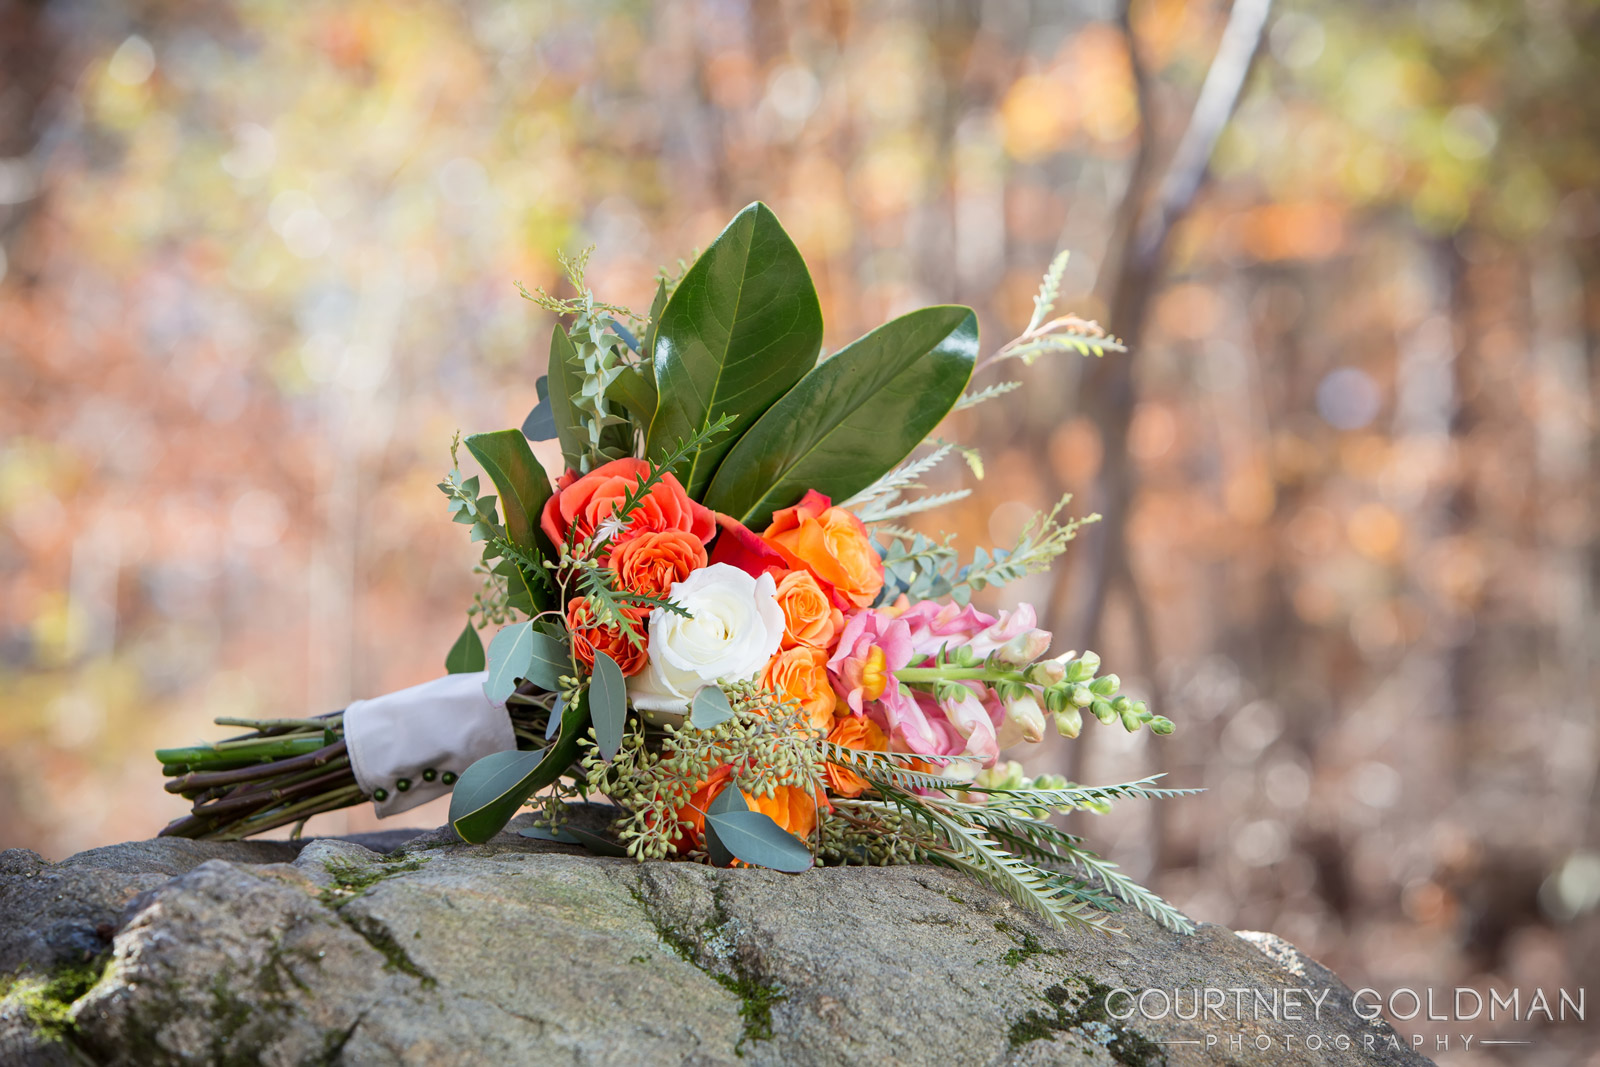 Atlanta-Wedding-Photography-by-Courtney-Goldman-07.jpg